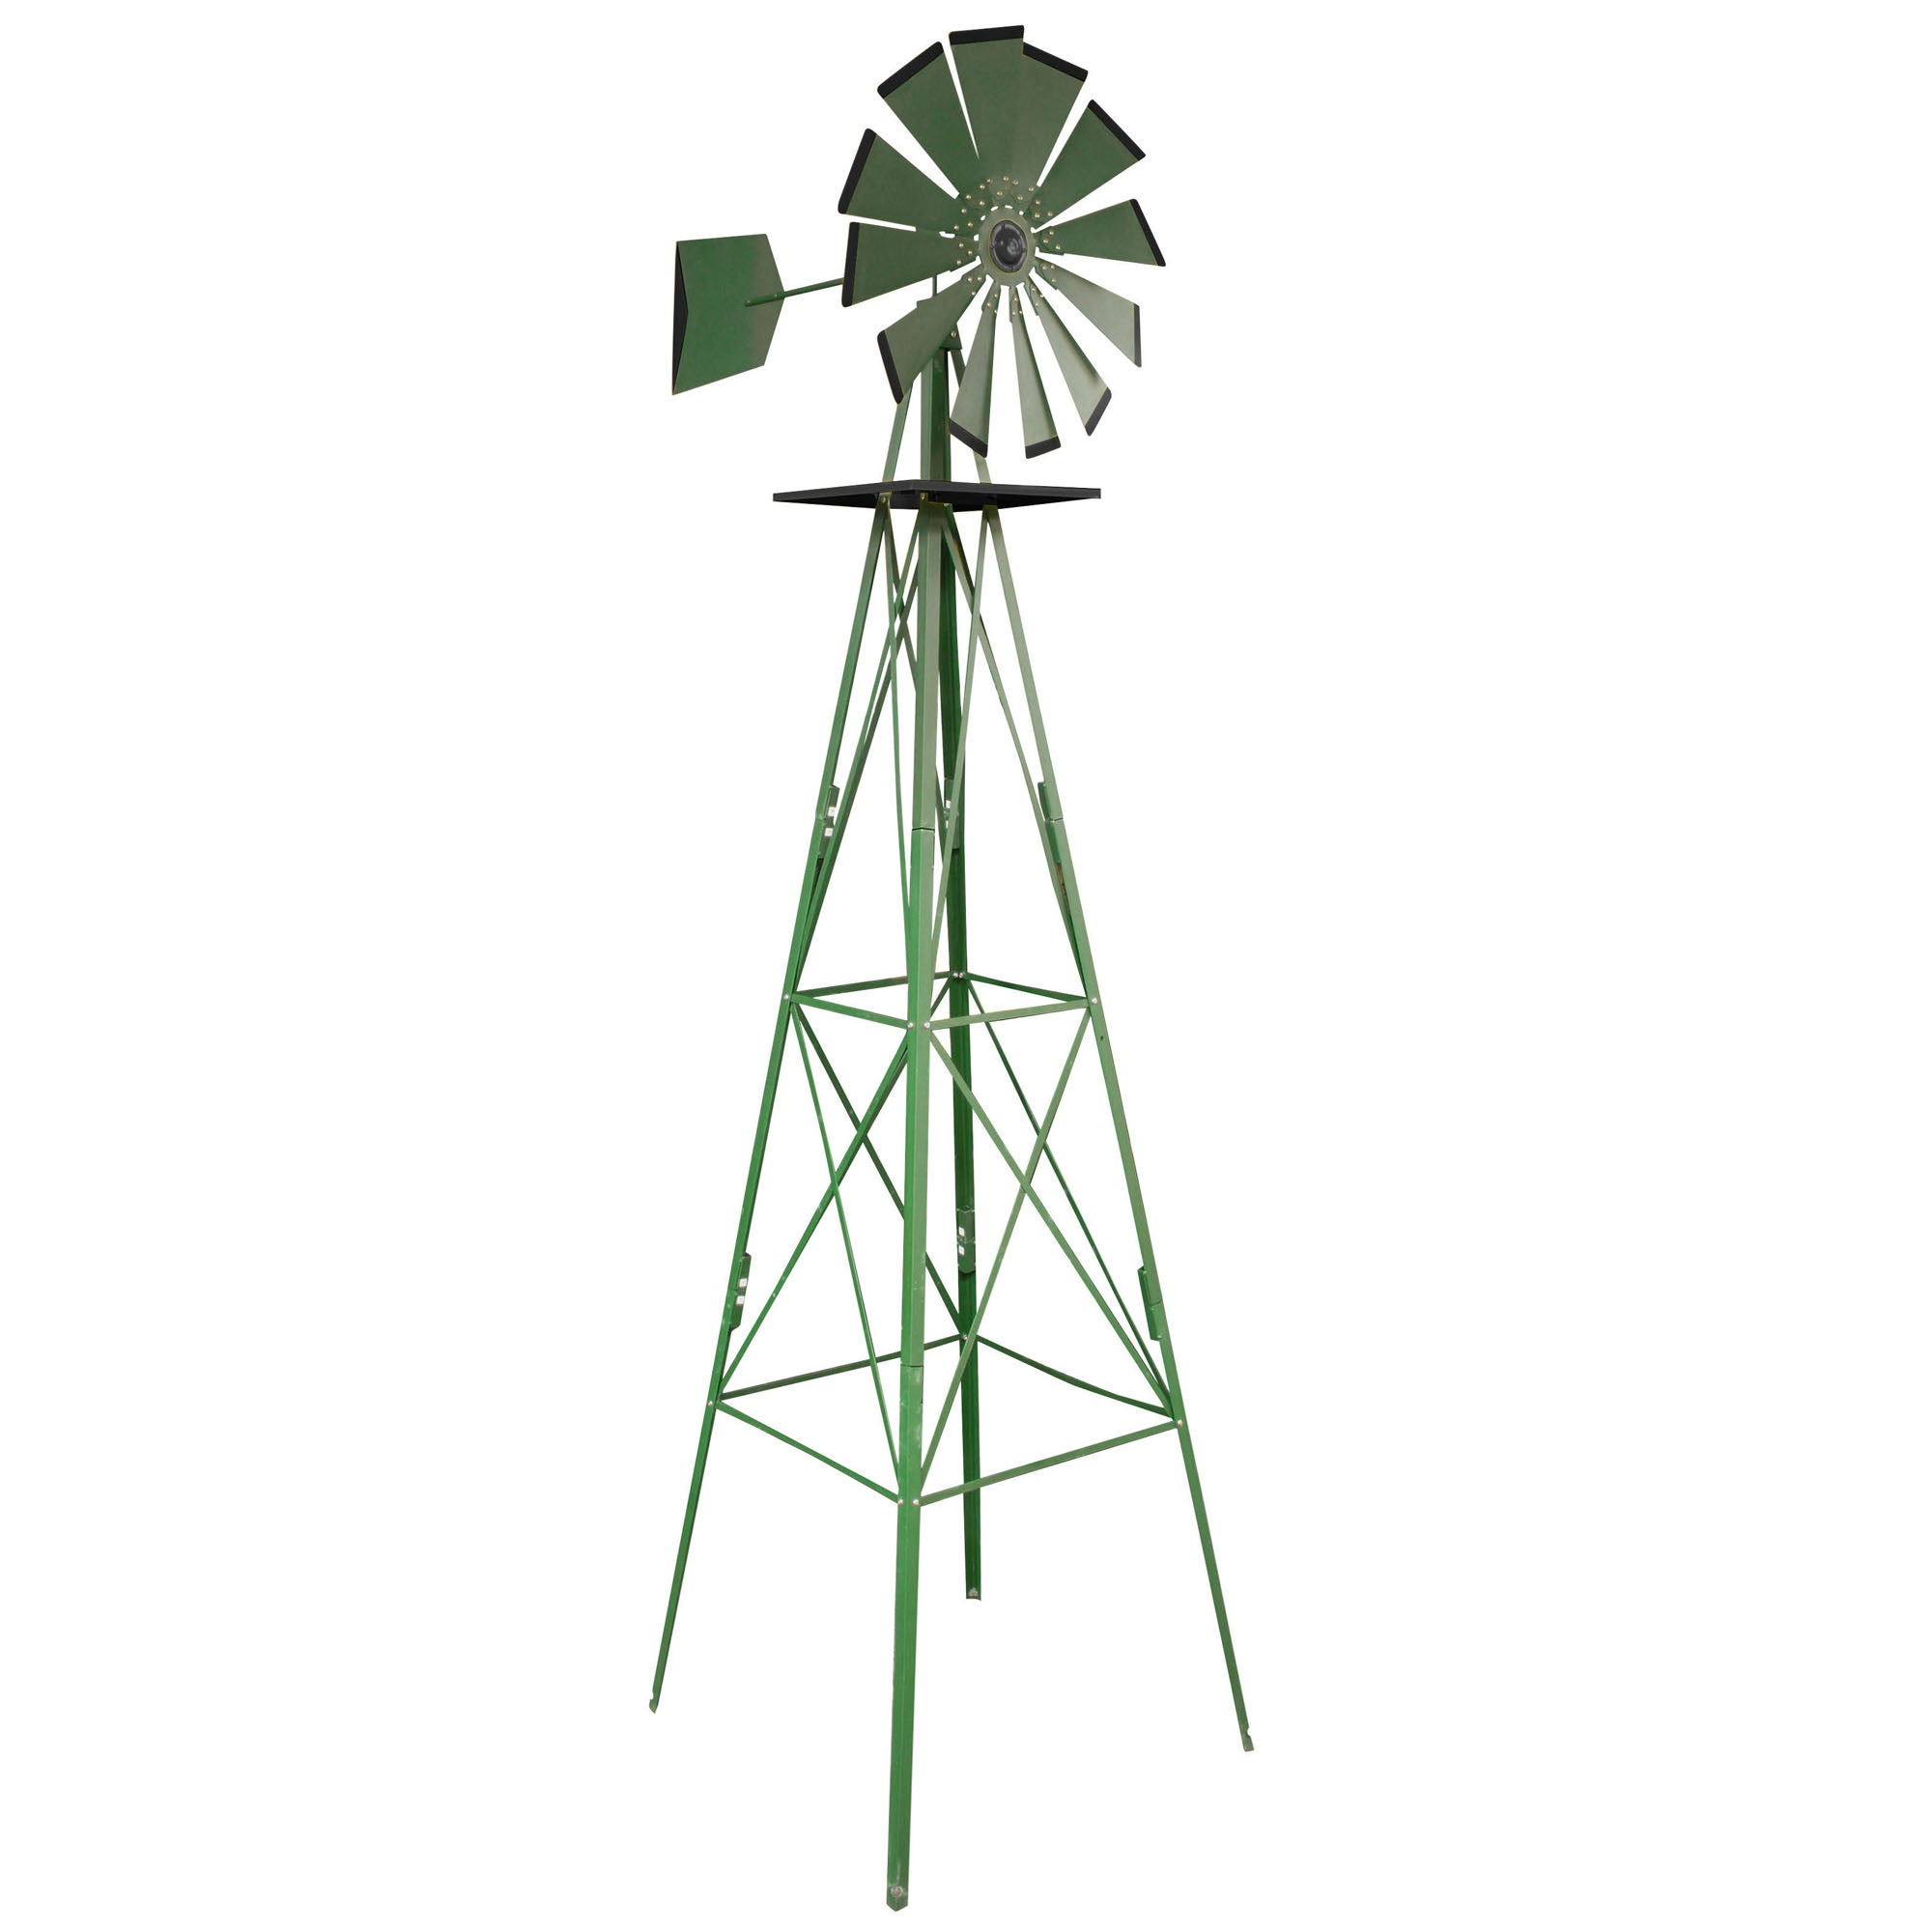 Metal Windmill 8u0027 Tower Yard Lawn Garden Ornamental Weather Vane Farm  Landscape